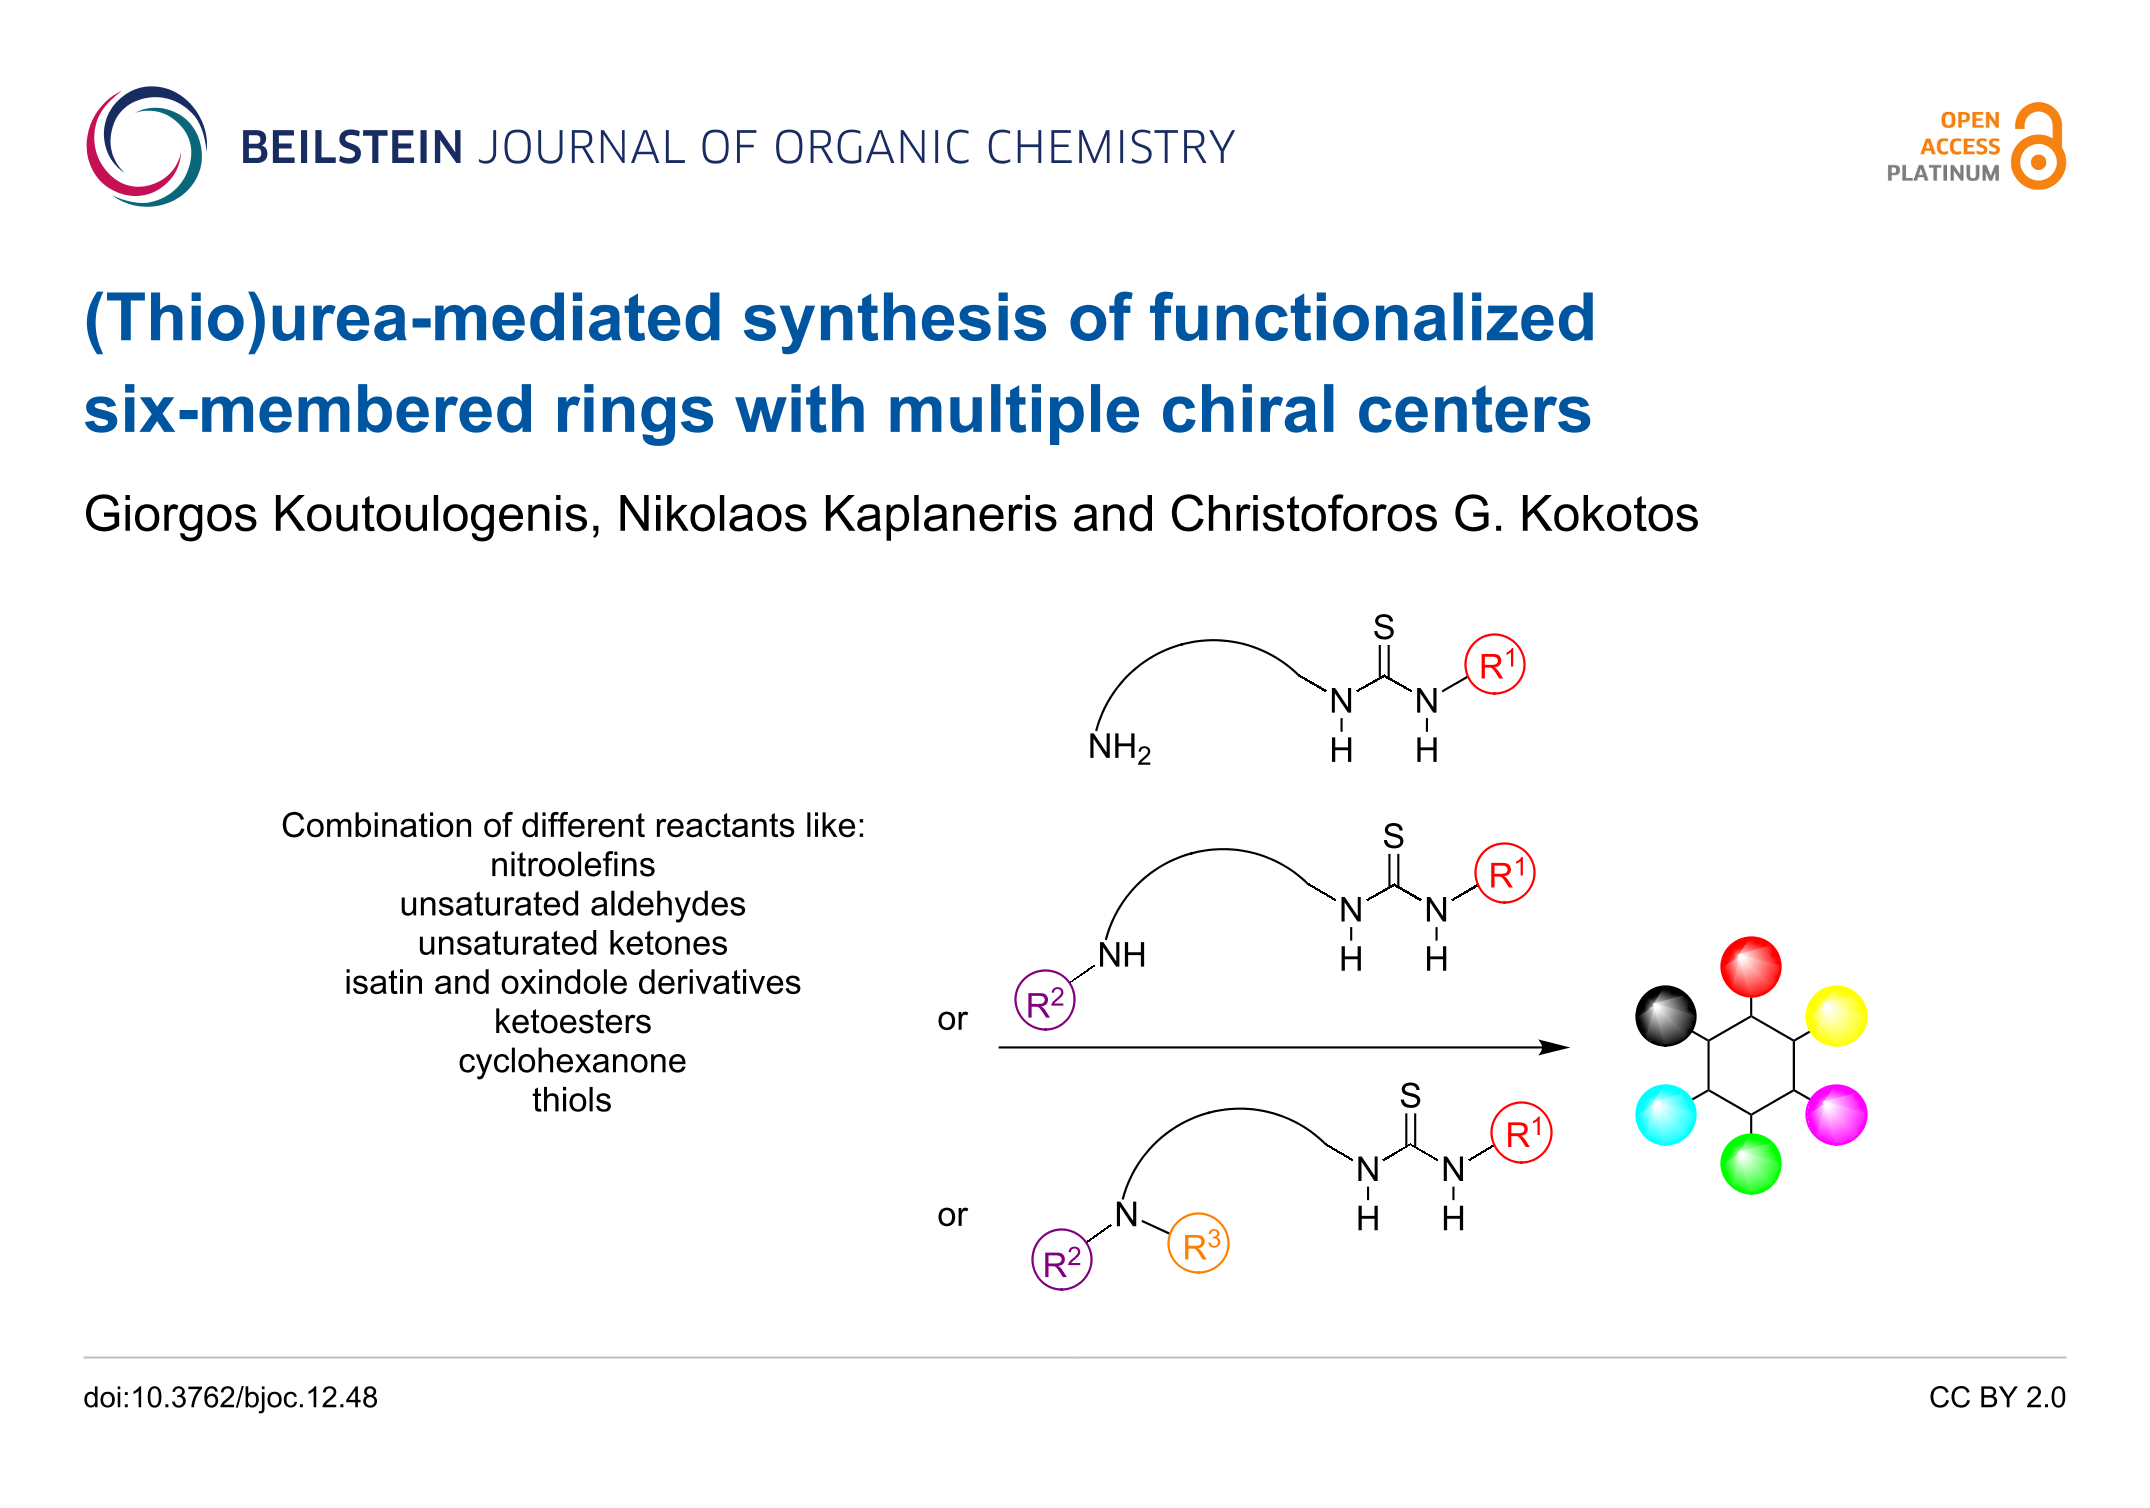 Thio)urea-mediated synthesis of functionalized six-membered rings